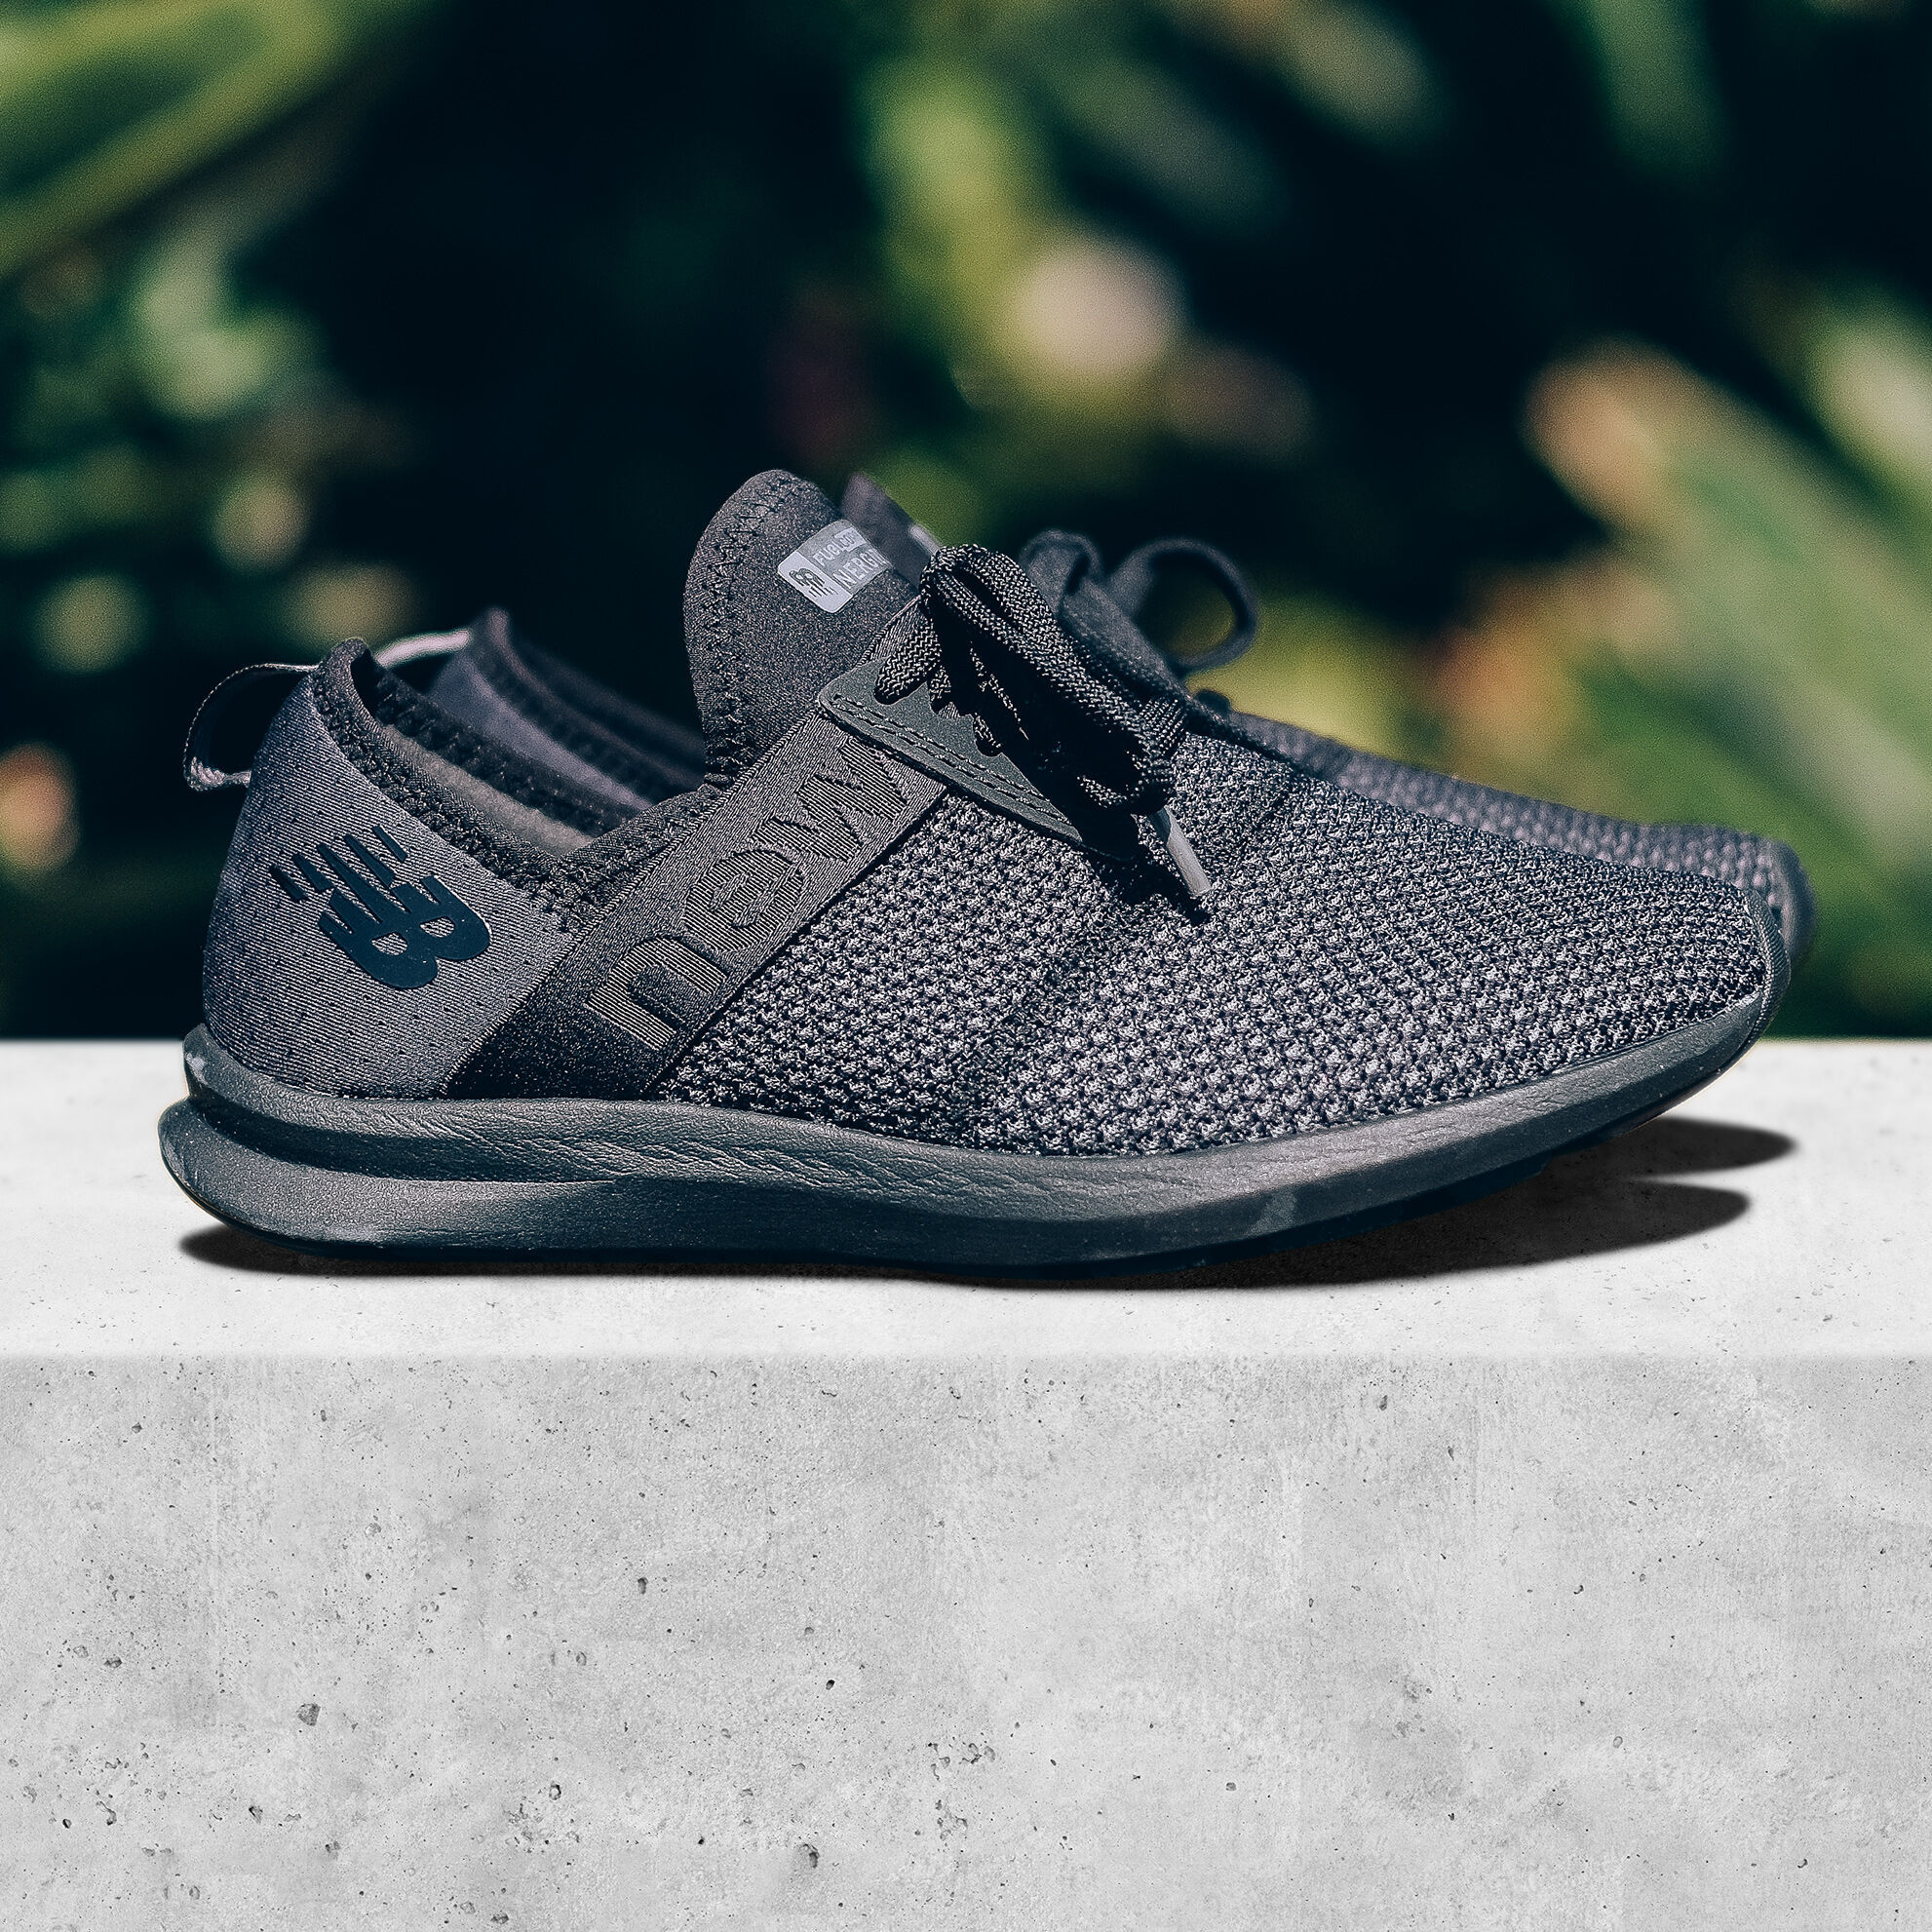 New-Balance-FuelCore-NERGIZE-2 +80 Most Inspiring Workout Shoes Ideas for Women